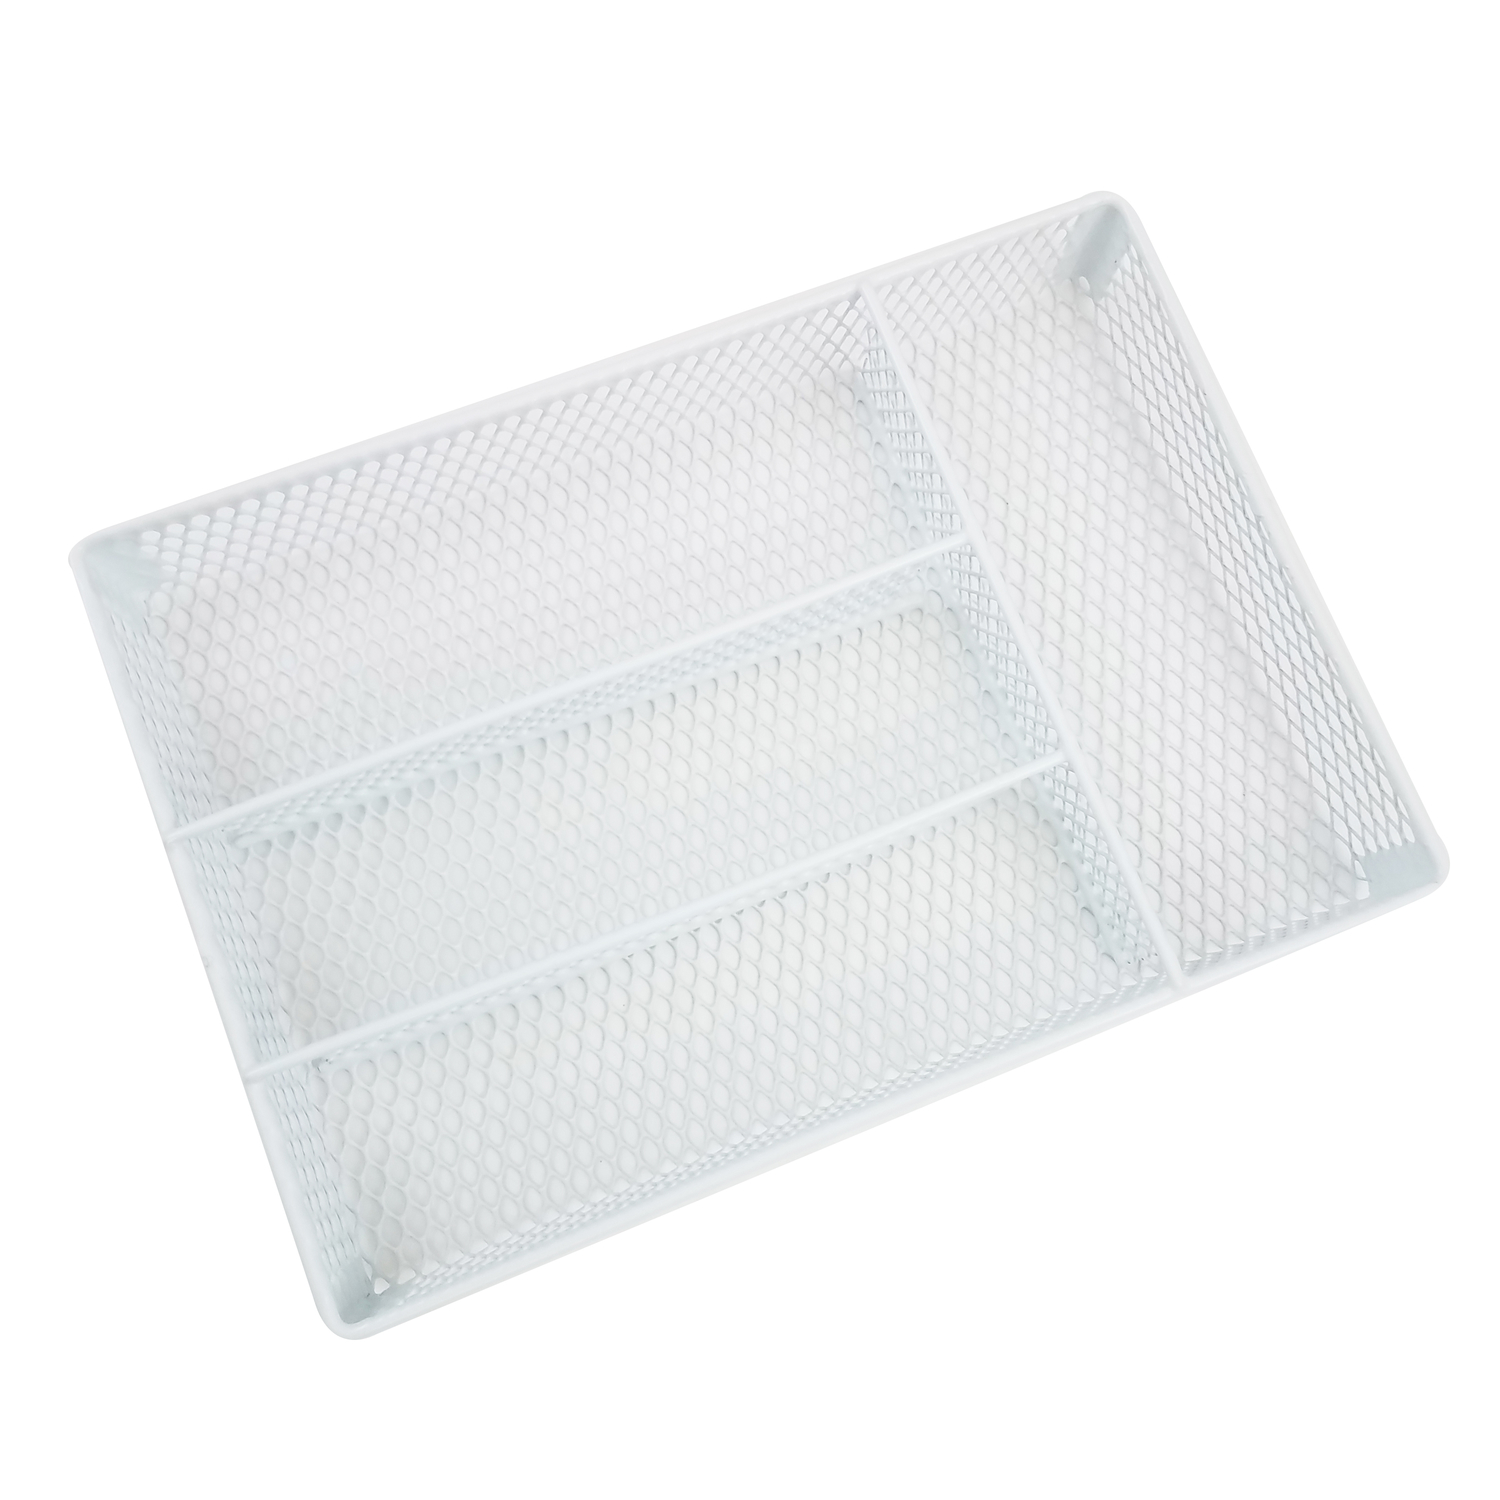 Homz  1.88 in. H x 10-3/4 in. W x 14-1/2 in. L Steel  White  Drawer Organizer